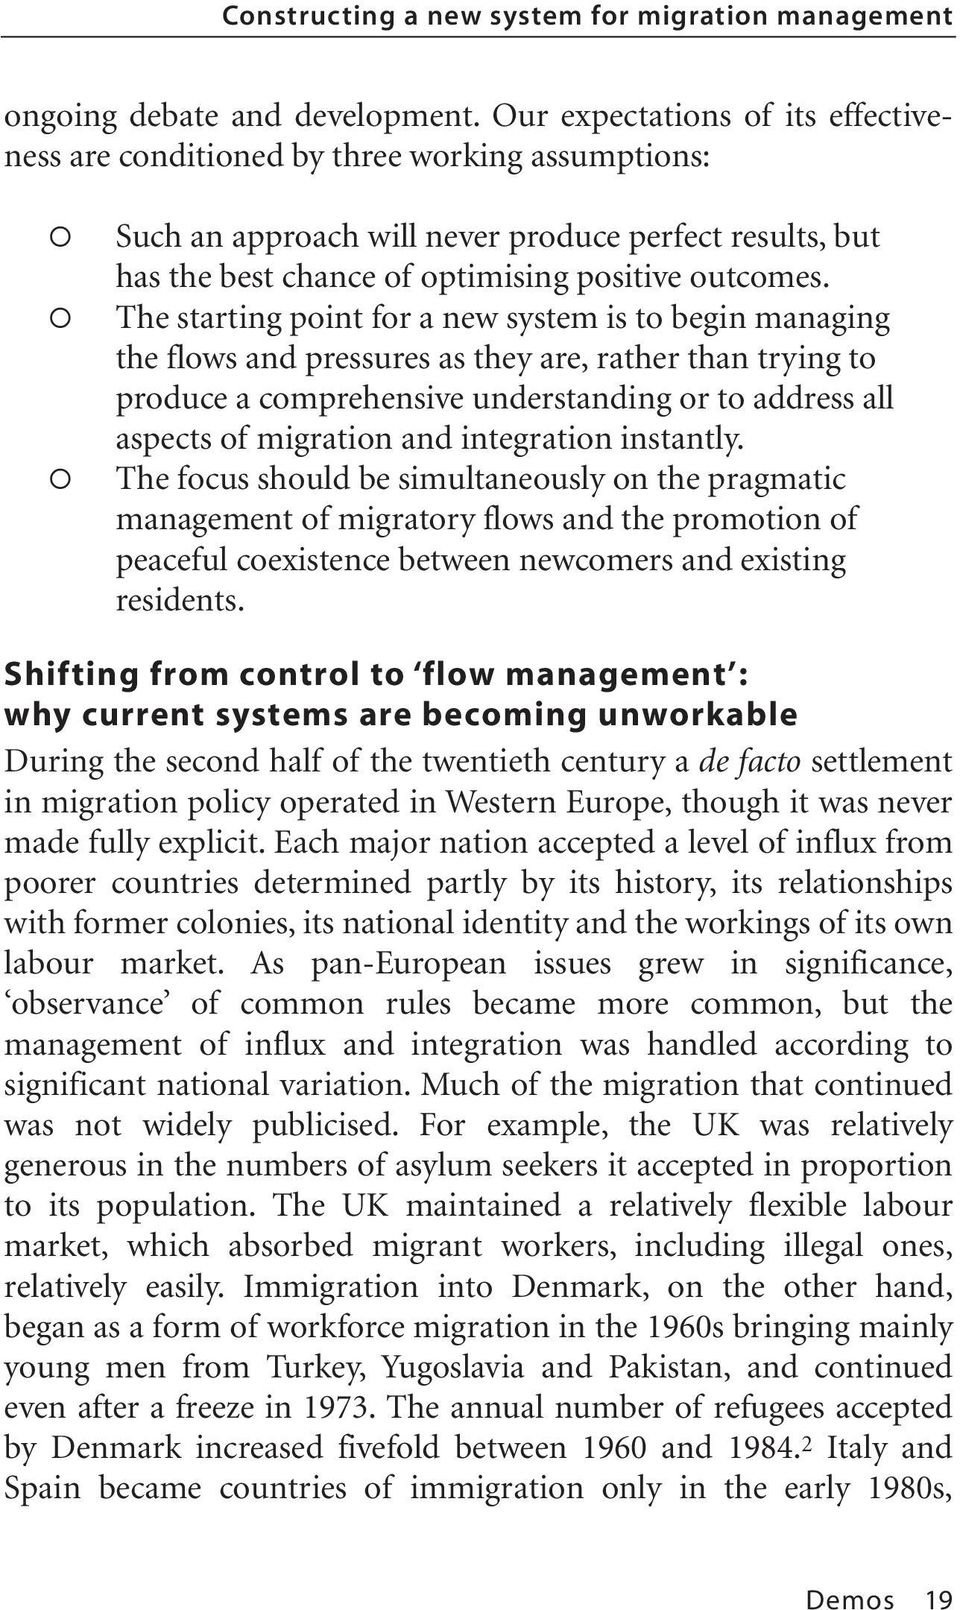 The starting point for a new system is to begin managing the flows and pressures as they are, rather than trying to produce a comprehensive understanding or to address all aspects of migration and